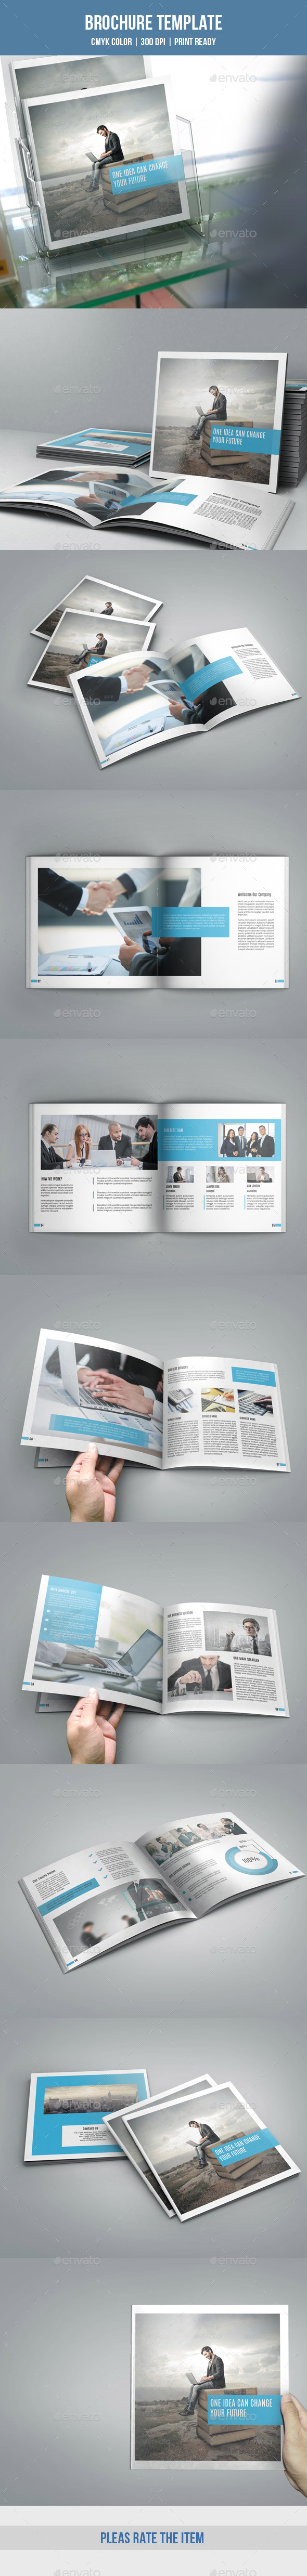 GraphicRiver Square Bifold Business Brochure-V170 9693512